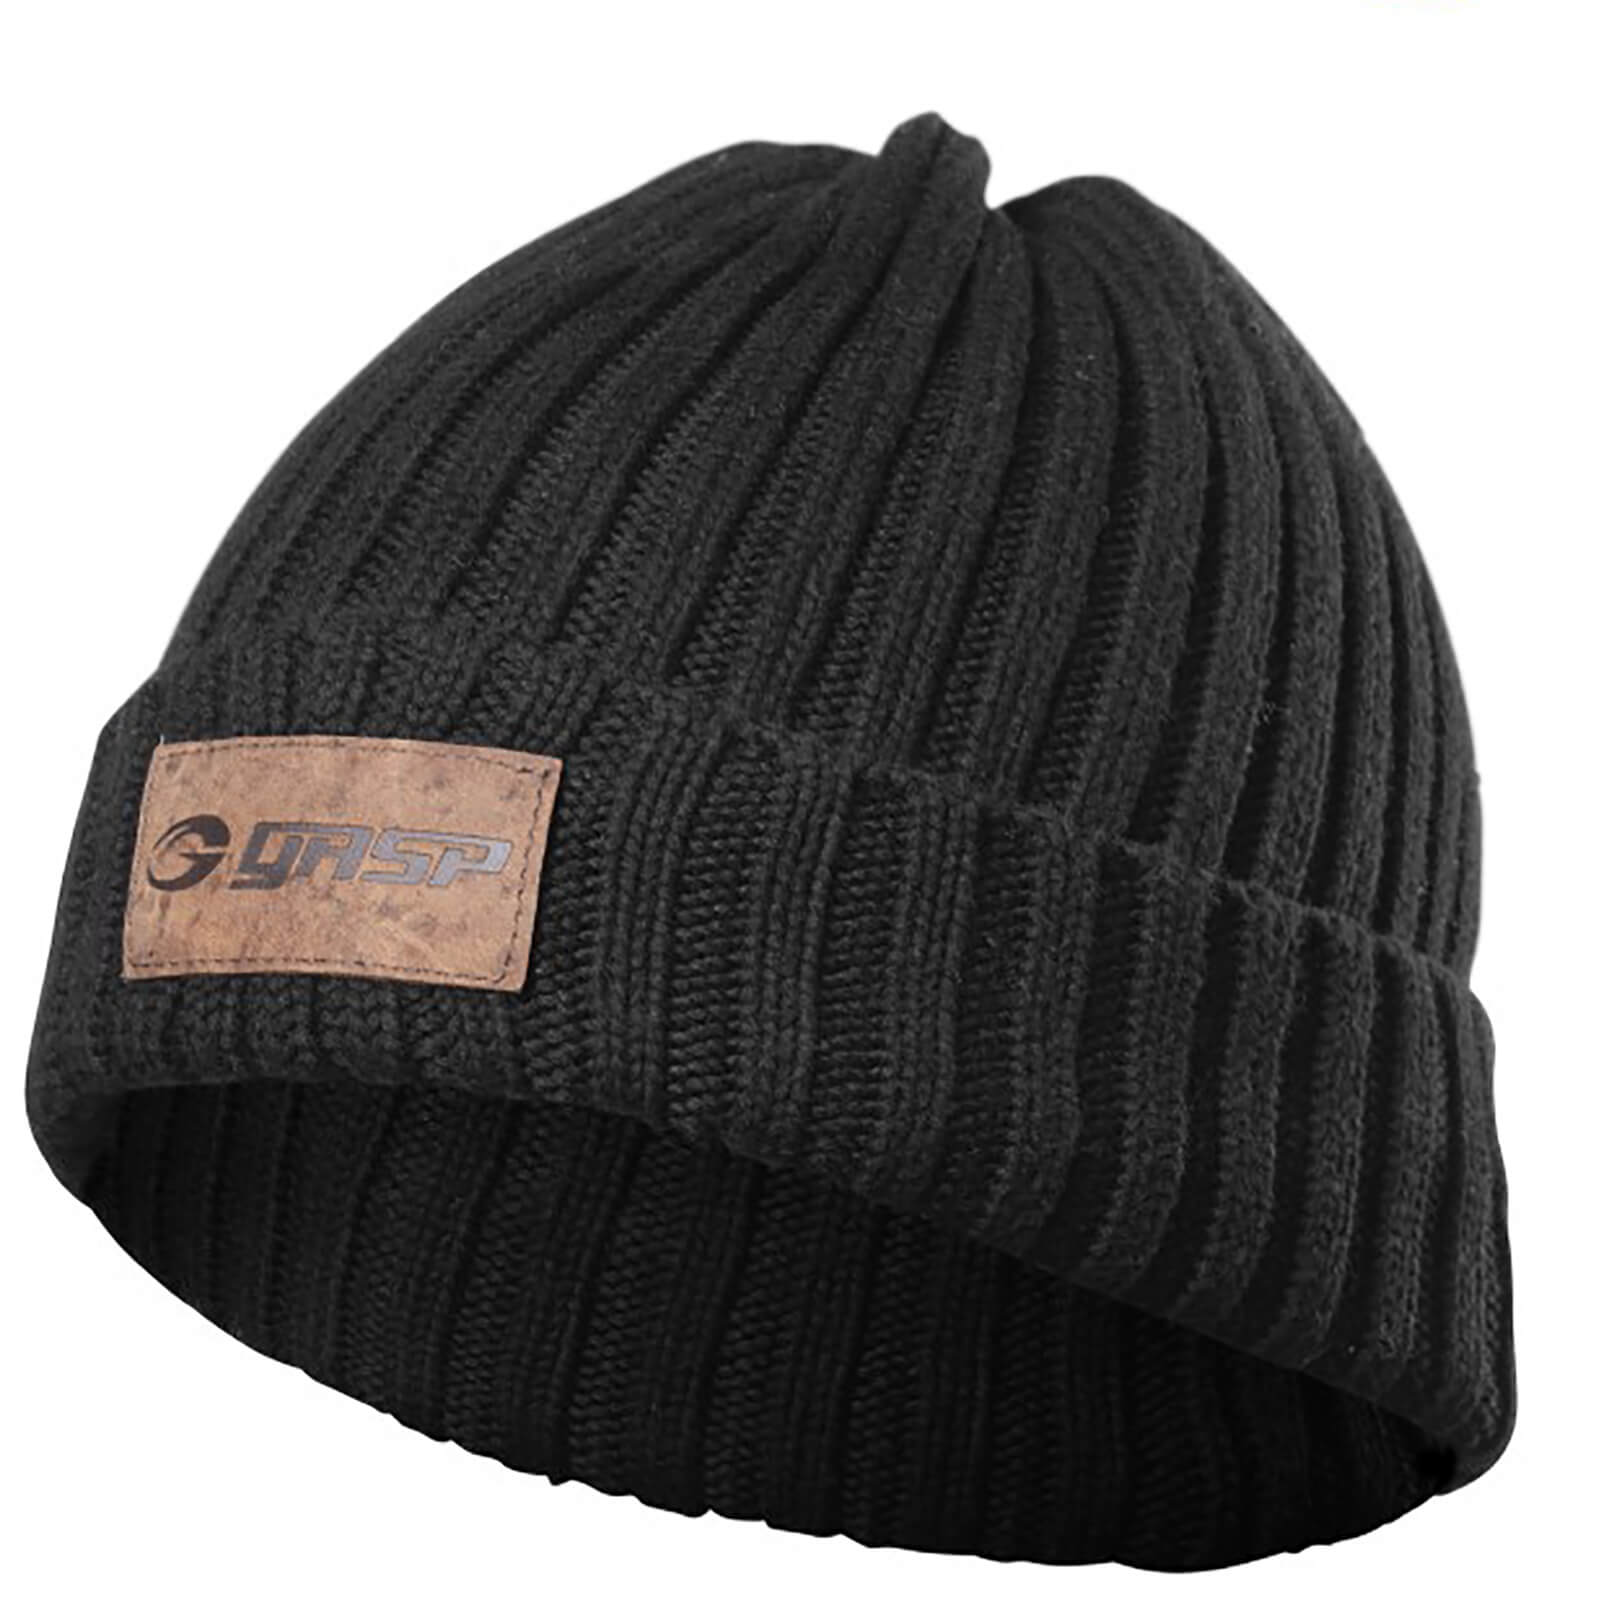 GASP Heavy Knitted Hat - Black